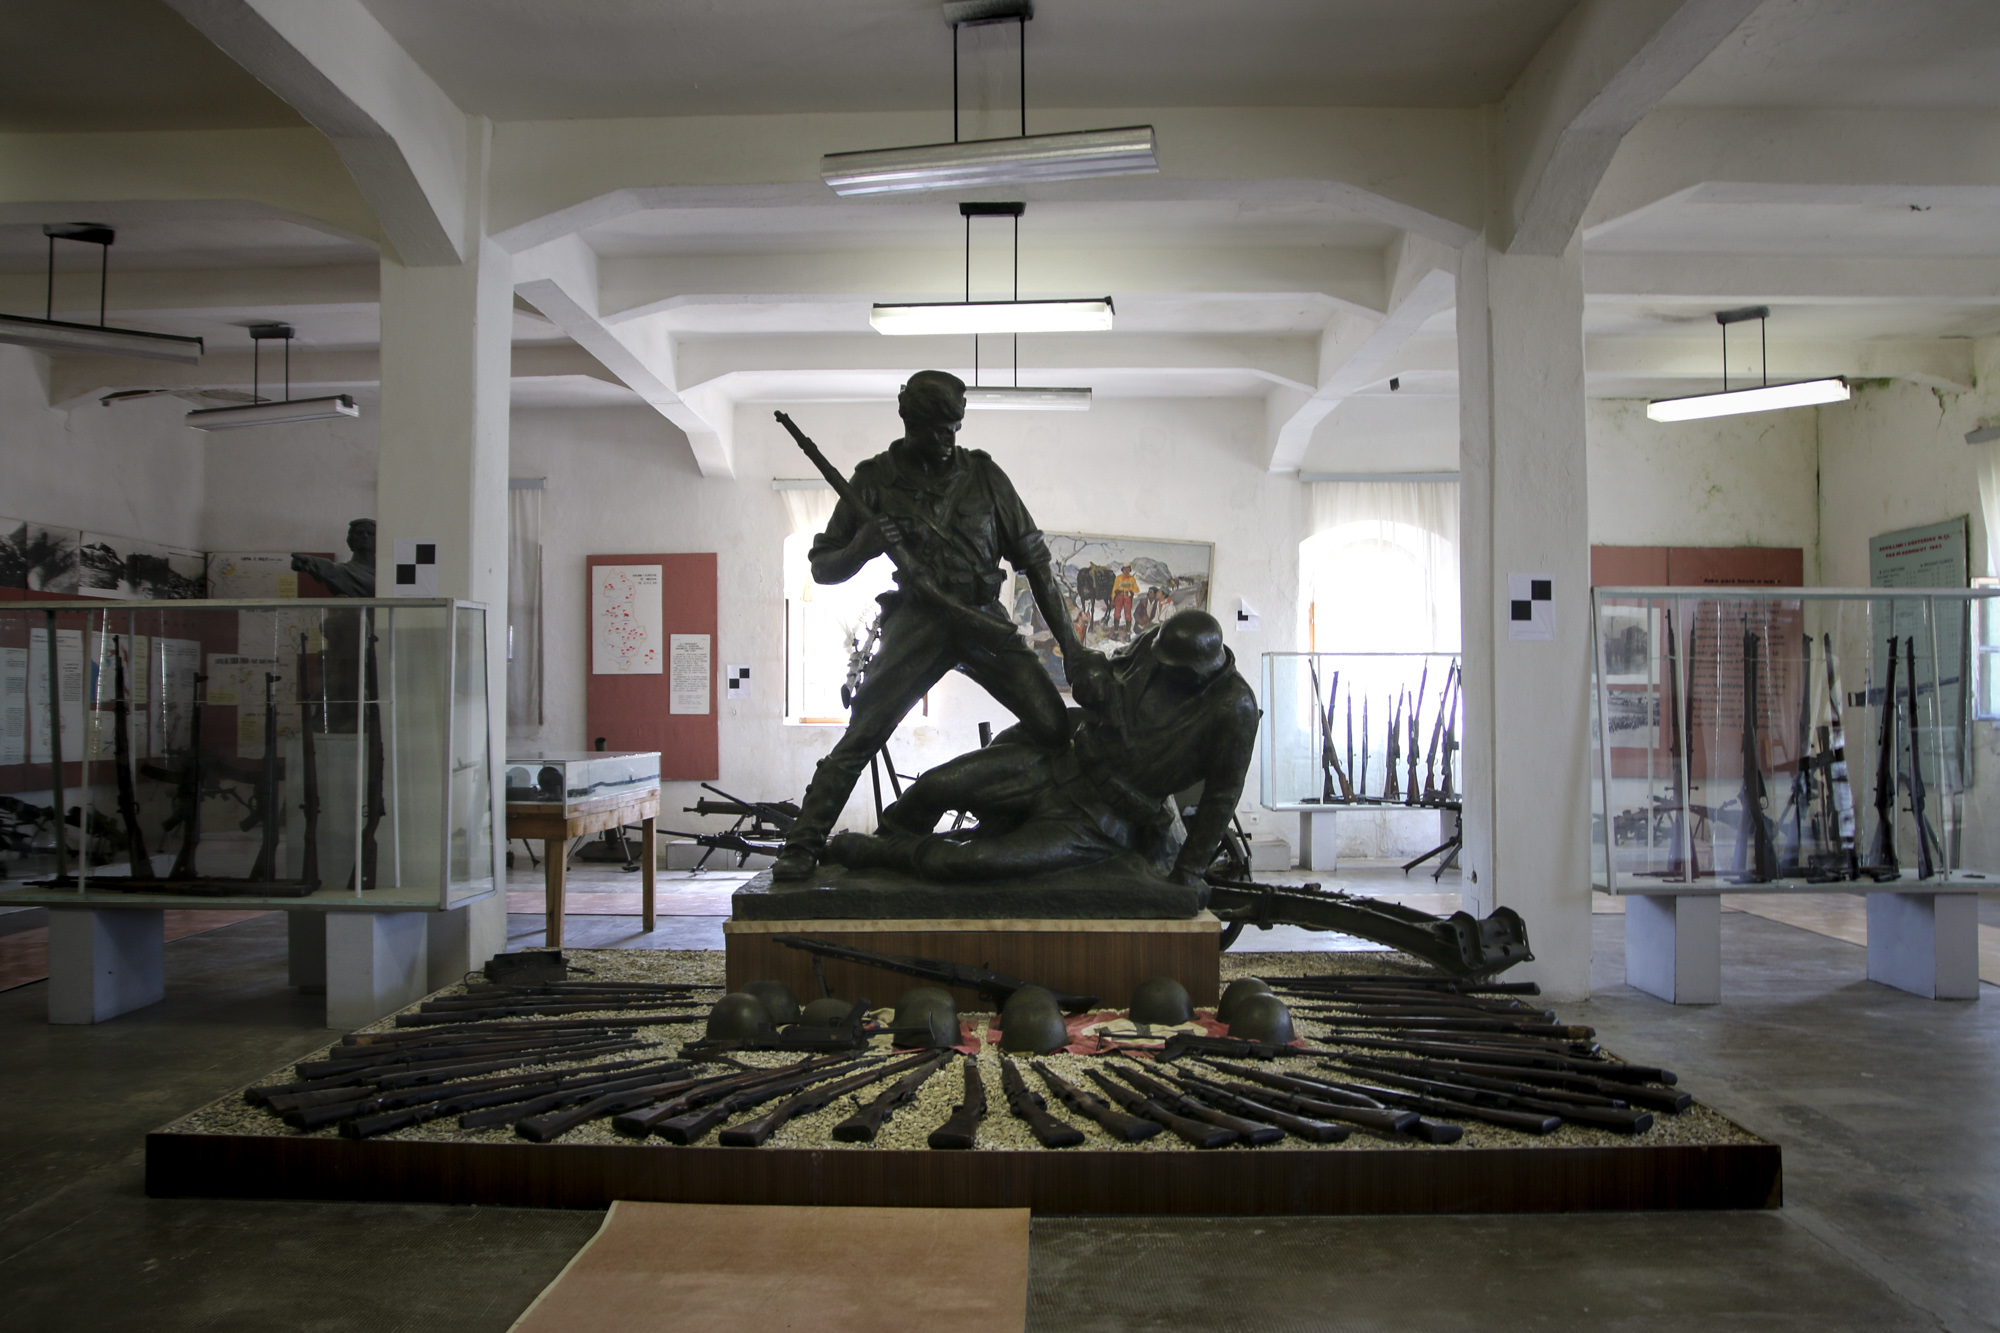 gjirokastra weapons museum, gjirokastra castle, the National Museum of Armaments